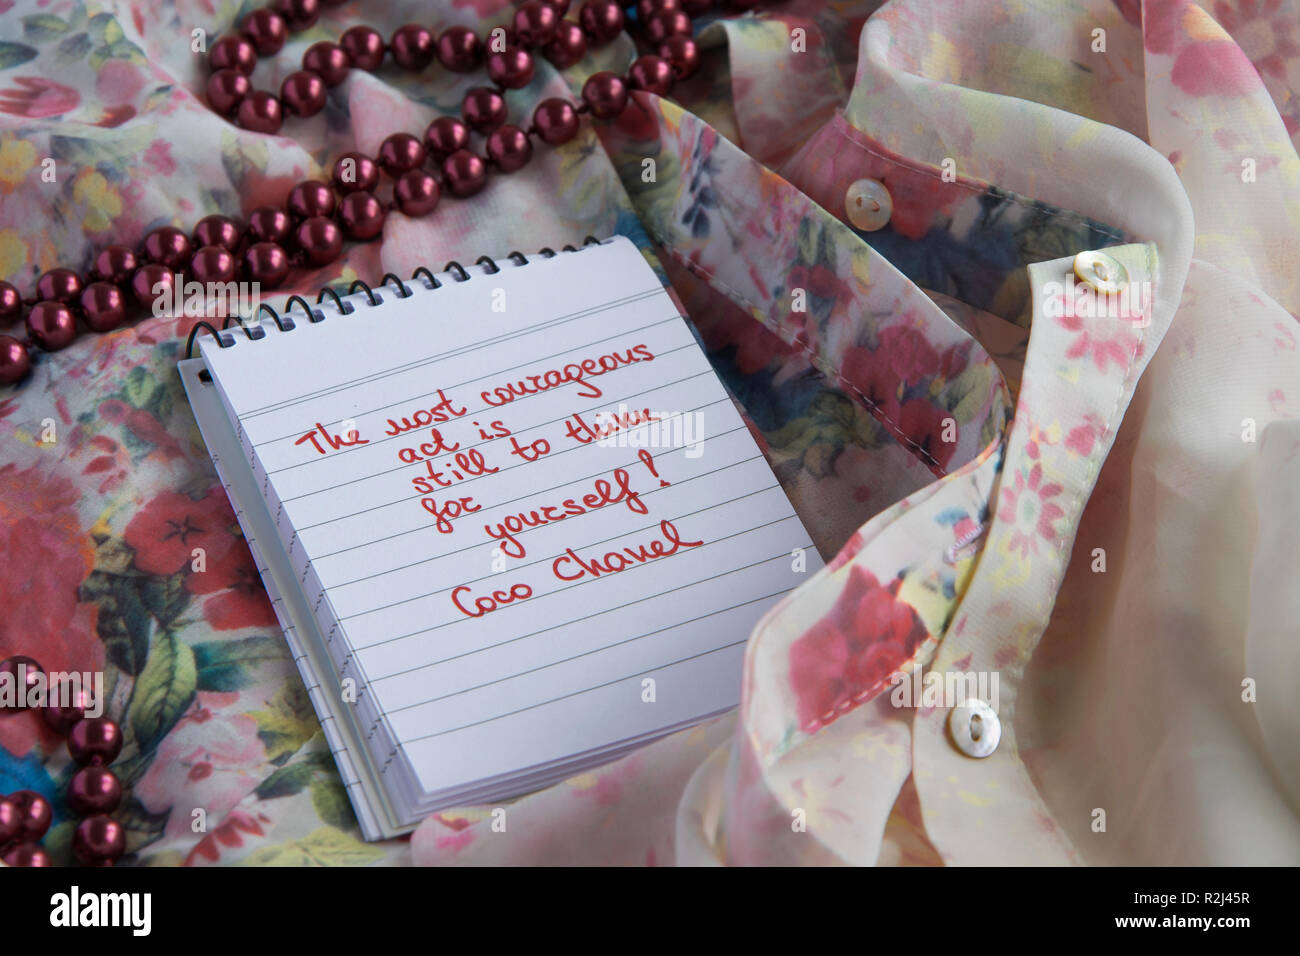 93ef3e8bf Coco Chanel quotes written on a block note, pearl accessories and and silky flower  shirt ,inspiration phrase